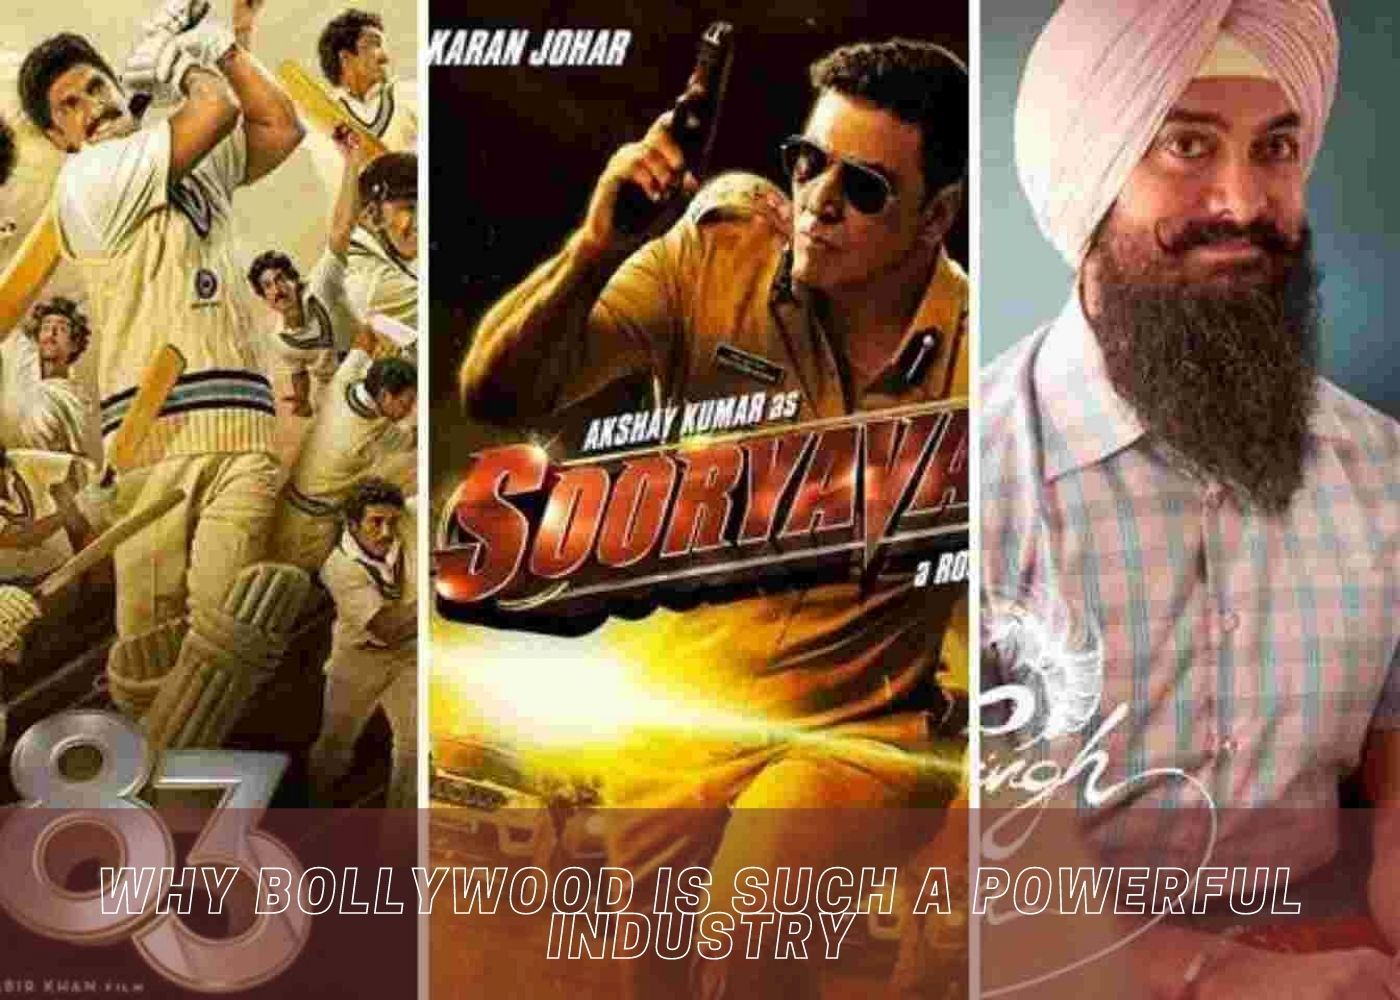 Why Bollywood is Such a Powerful Industry